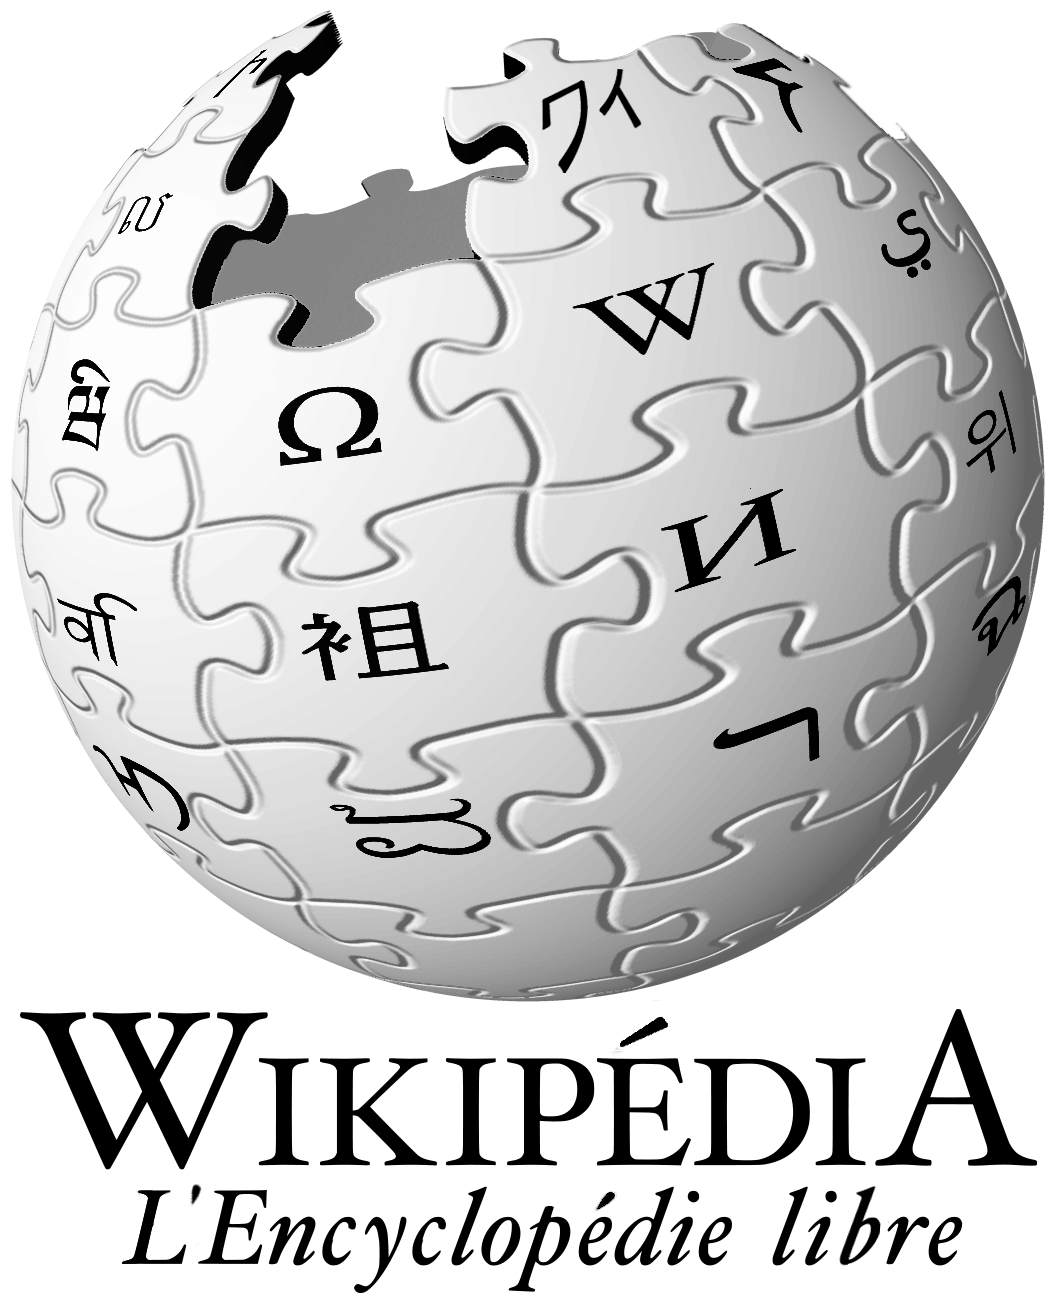 (Culture) On peut aller sur un article de Wikipedia